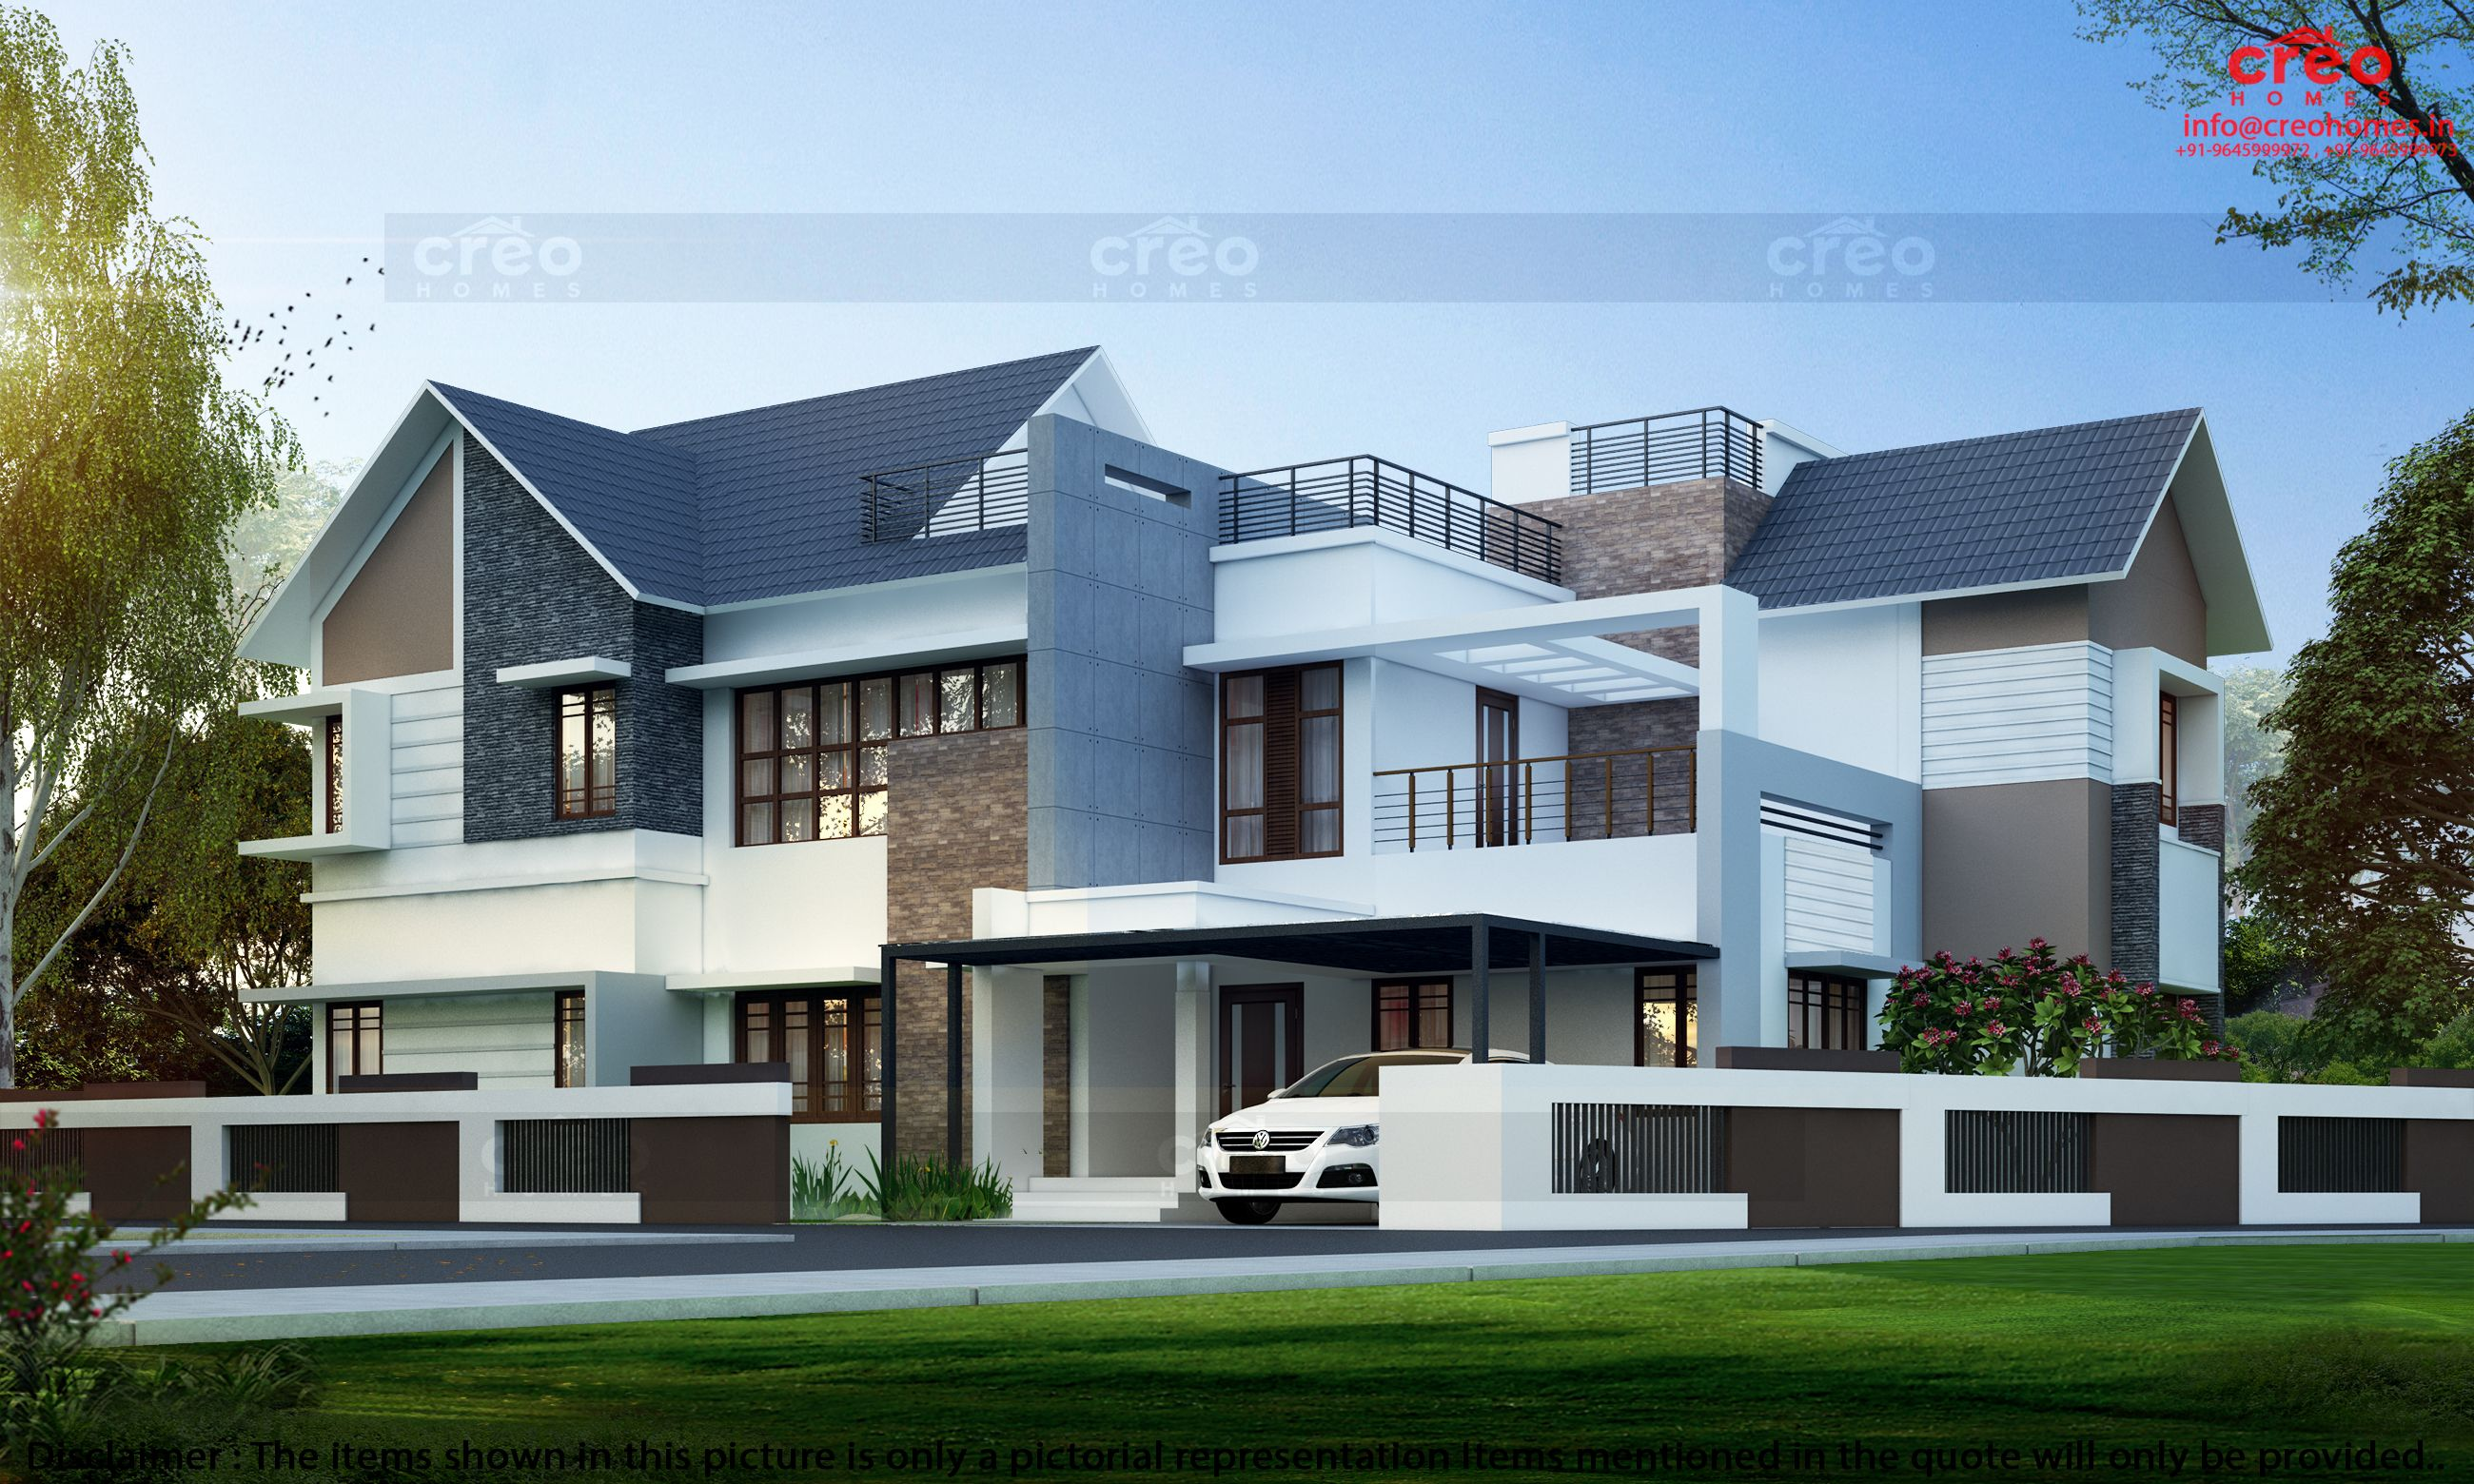 Architectural Design Not Only Focuses On The Physical Structure But The Functionality And Ae Architecture Design House Architecture Design Architecture House